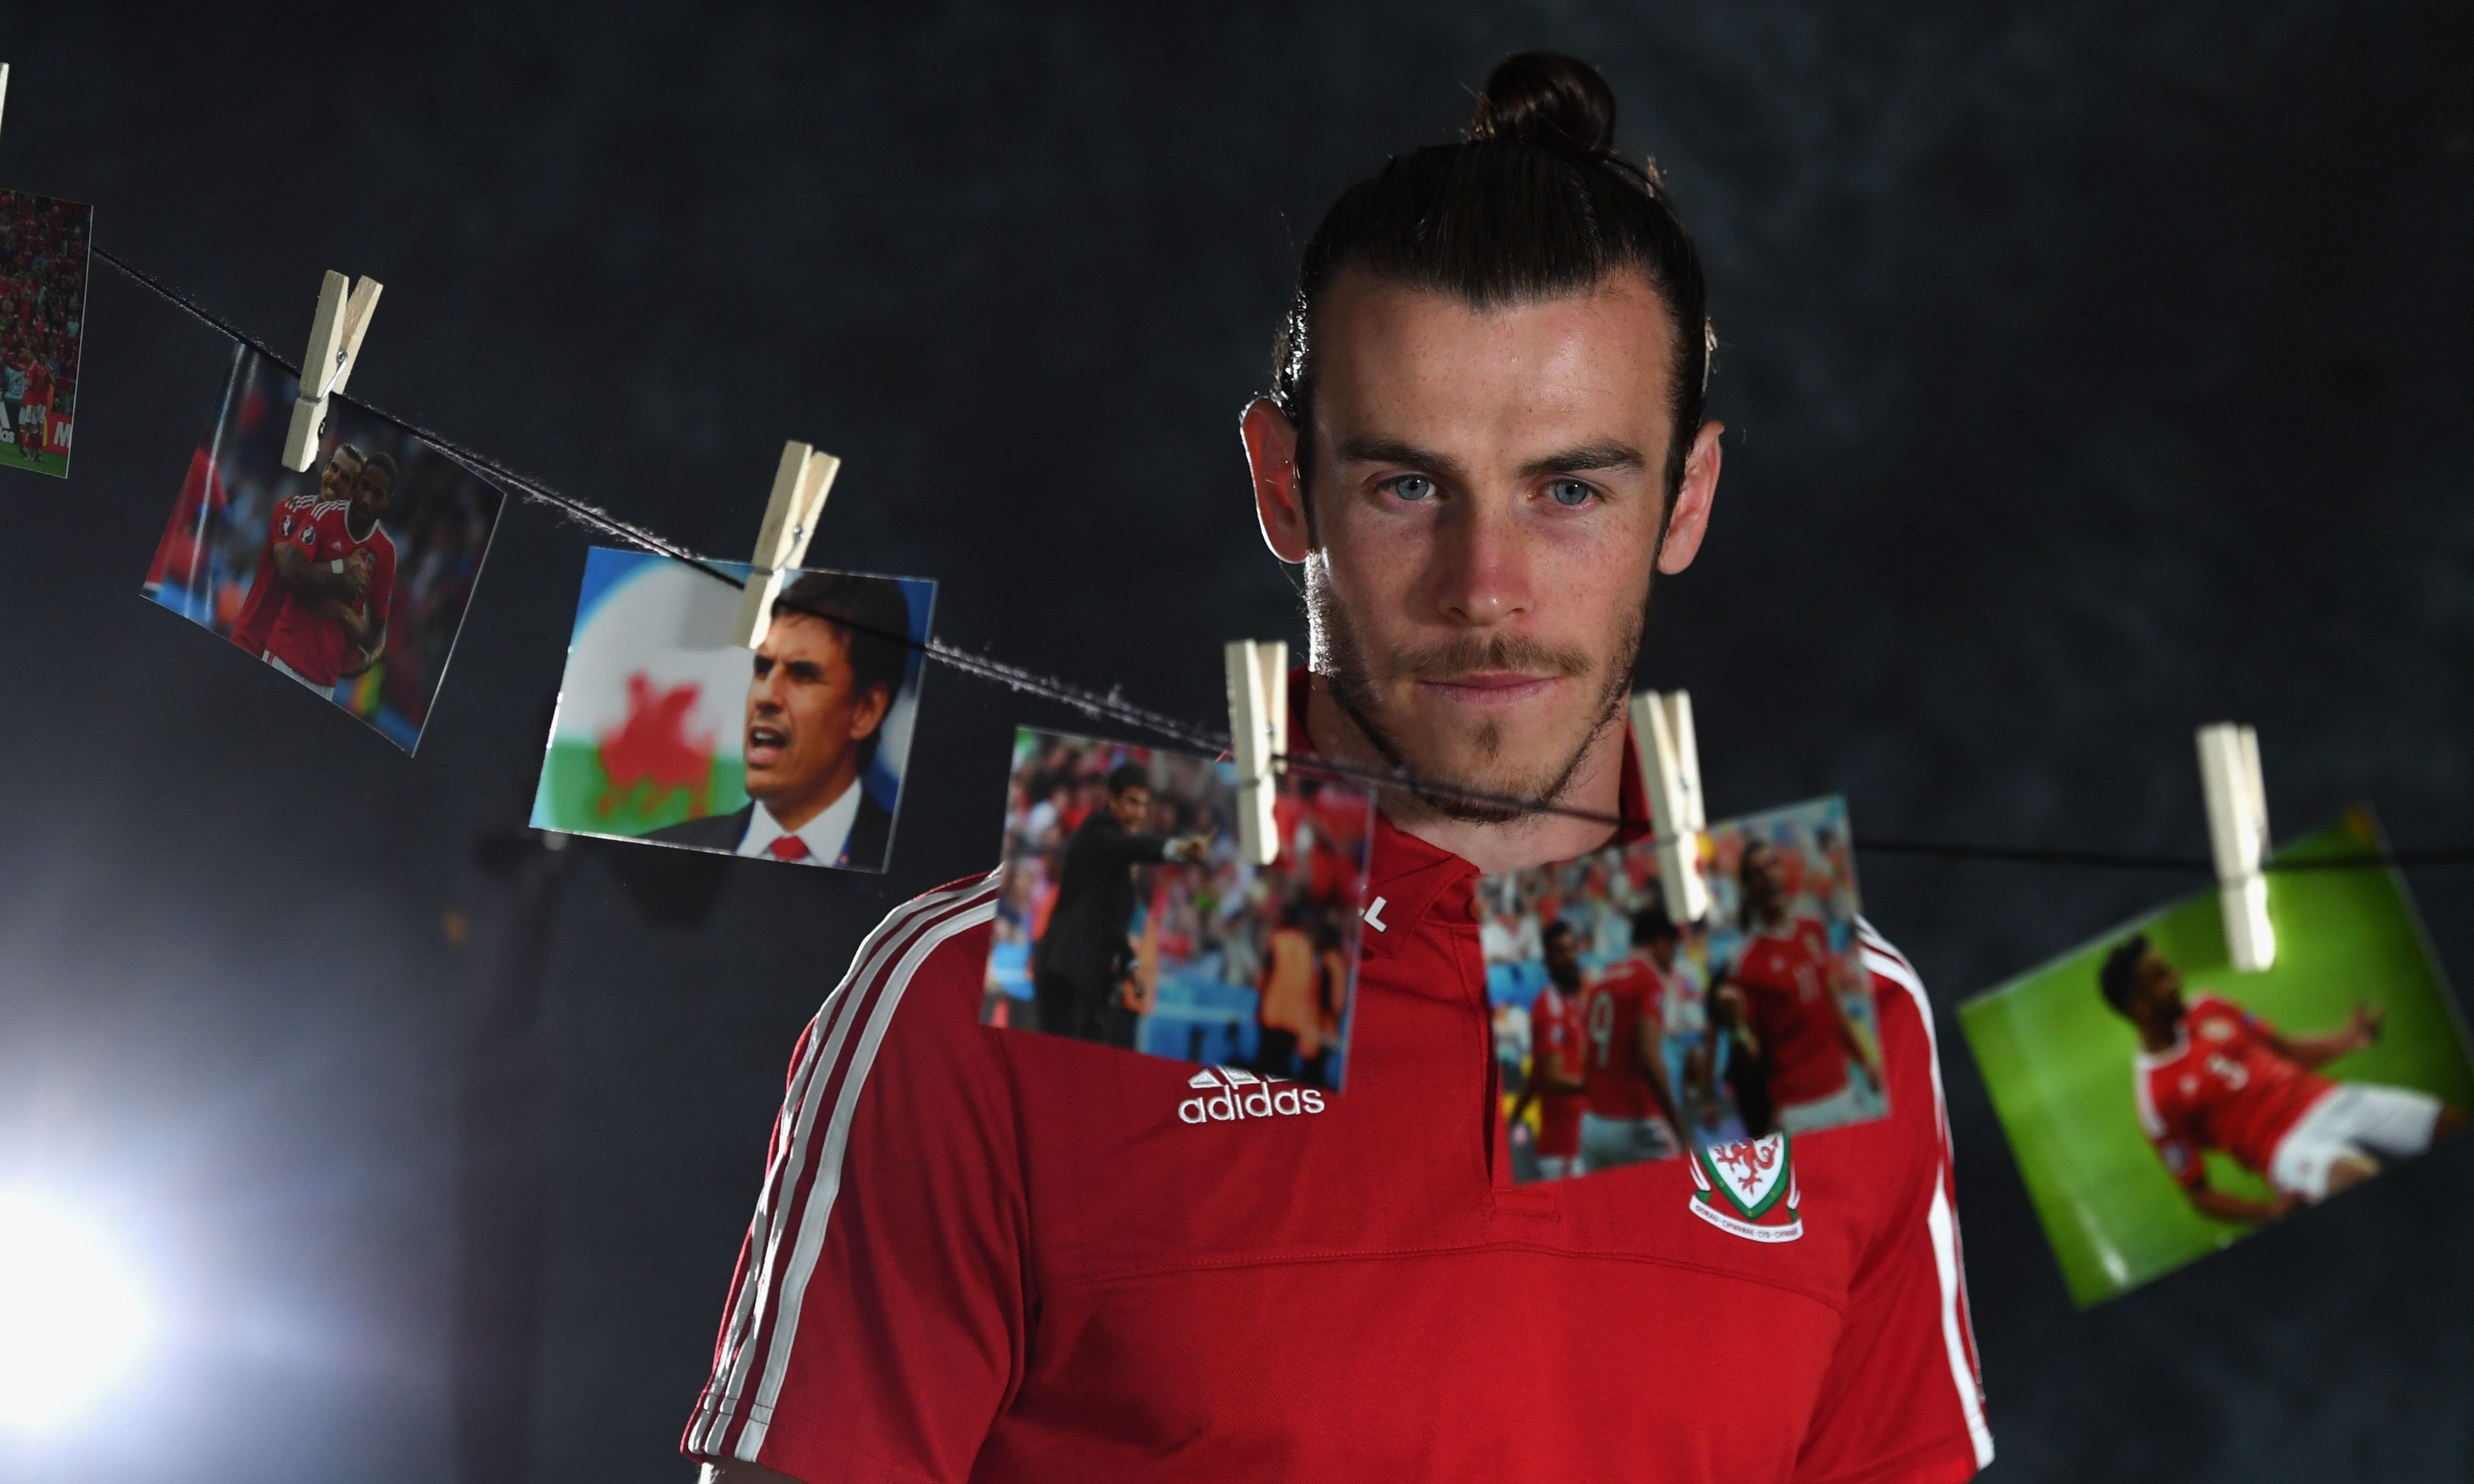 DINARD, FRANCE - JUNE 29:  Wales player Gareth Bale interviewed ahead of their quarter final match against Belguim at their Dinard training camp on June 29, 2016 in Dinard, France.  (Photo by Stu Forster/Getty Images) *** Local Caption *** Gareth Bale